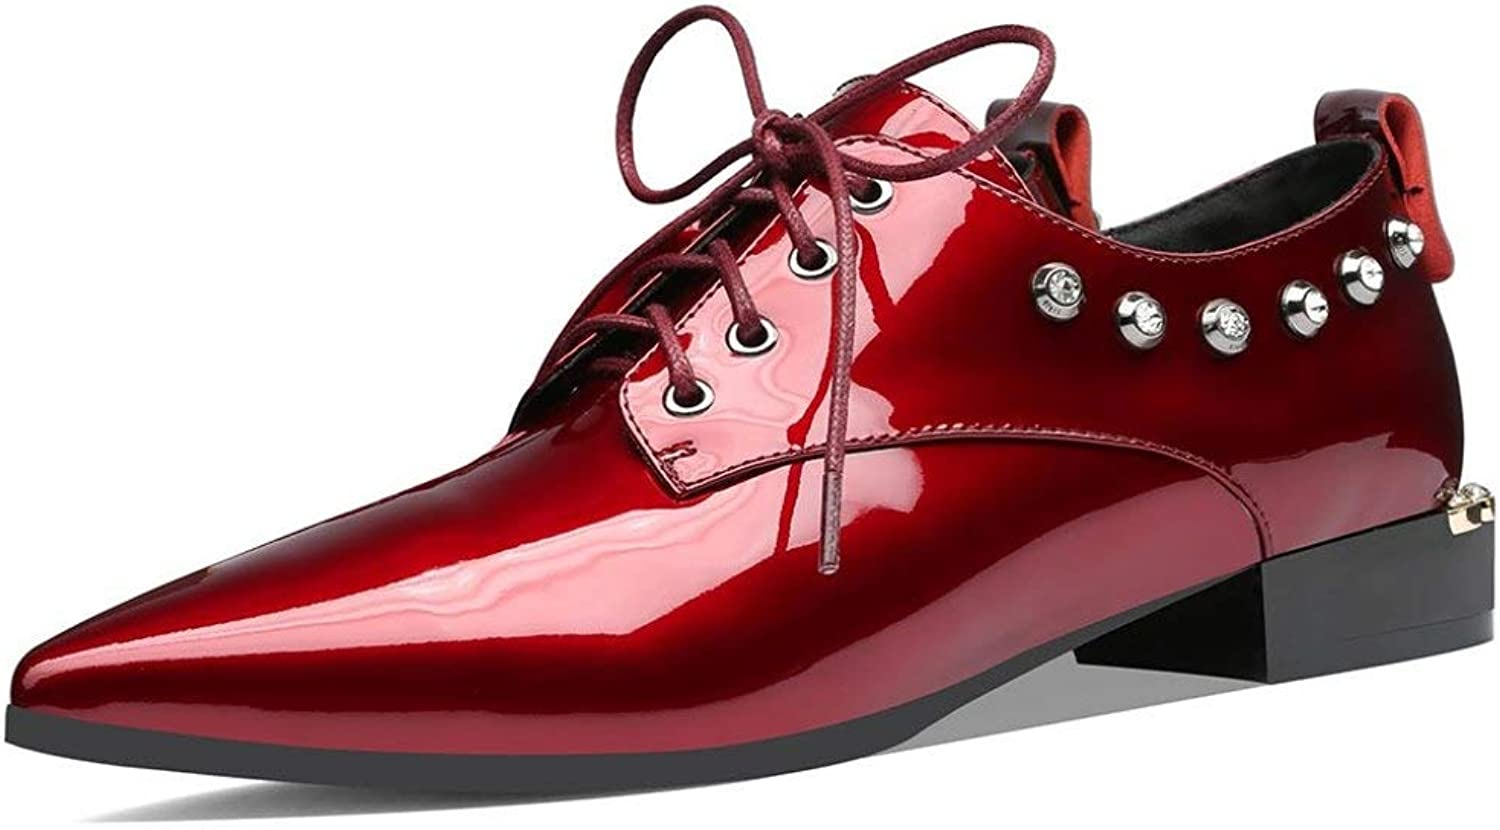 Fay Waters Rivet Patent Leather Oxfords for Women Lace Up Low Heel Pointed Toe Flat shoes